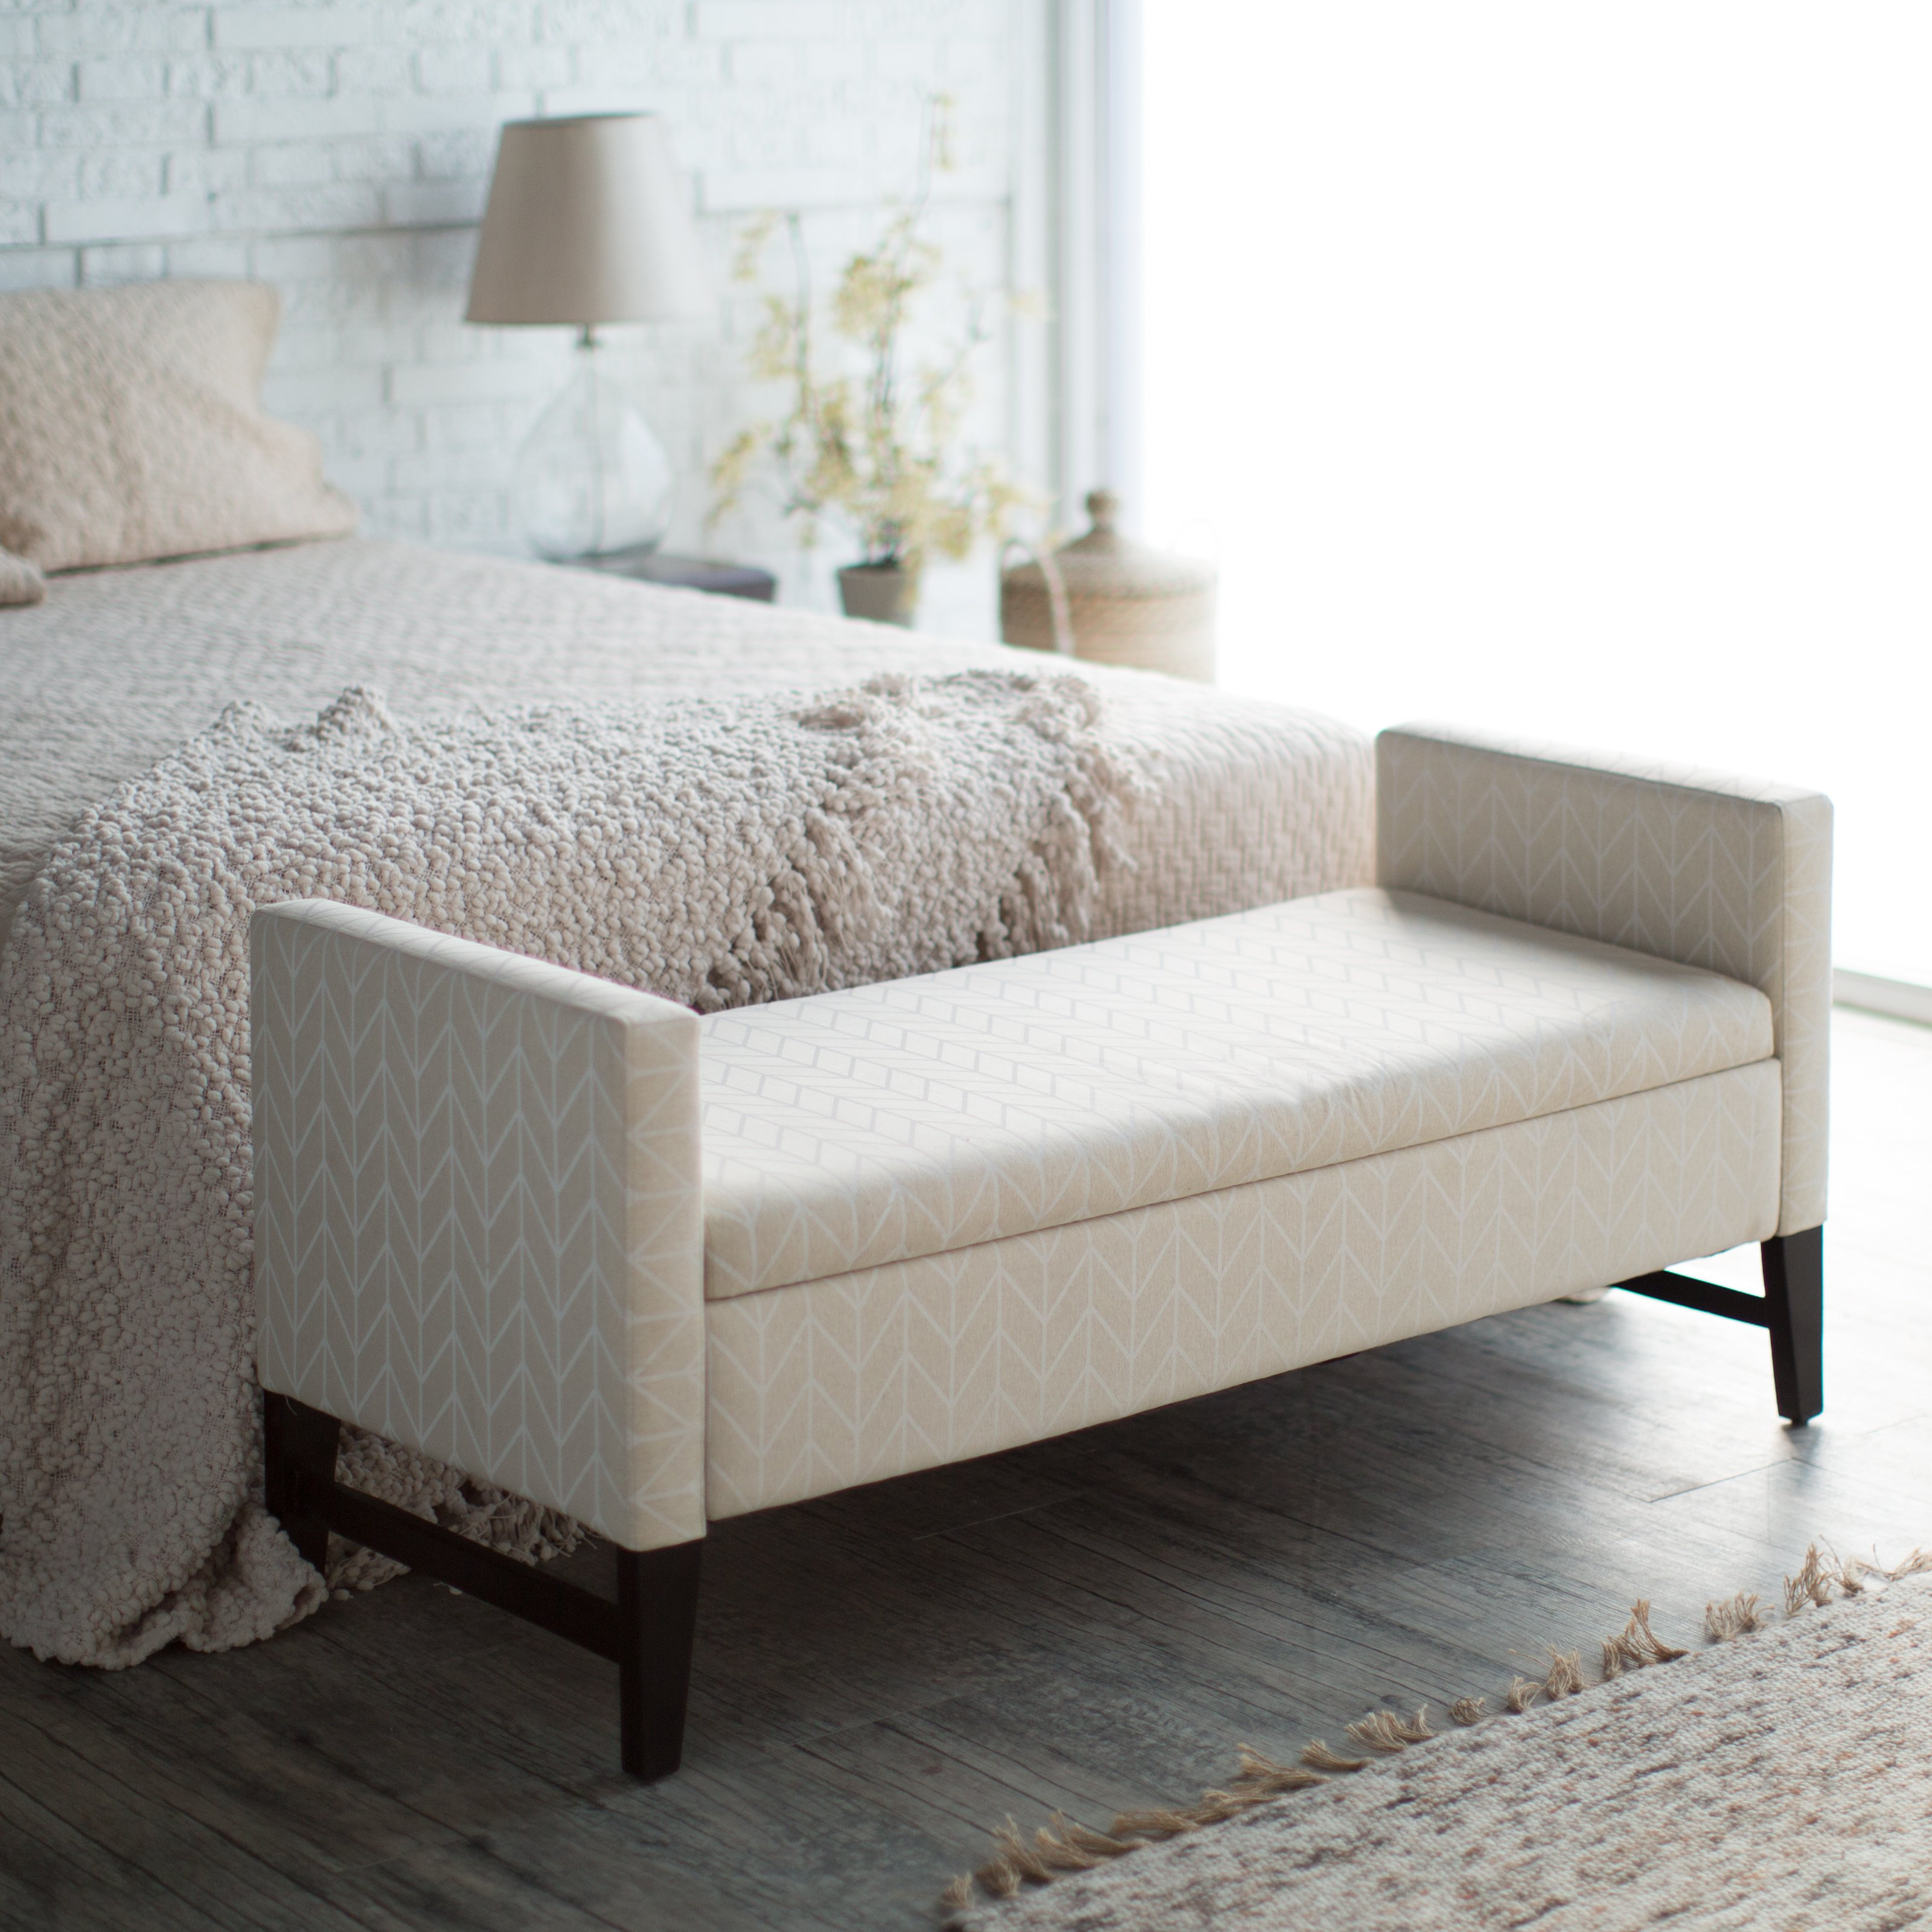 end of bed storage bench  homesfeed - modern white end of bed storage bench